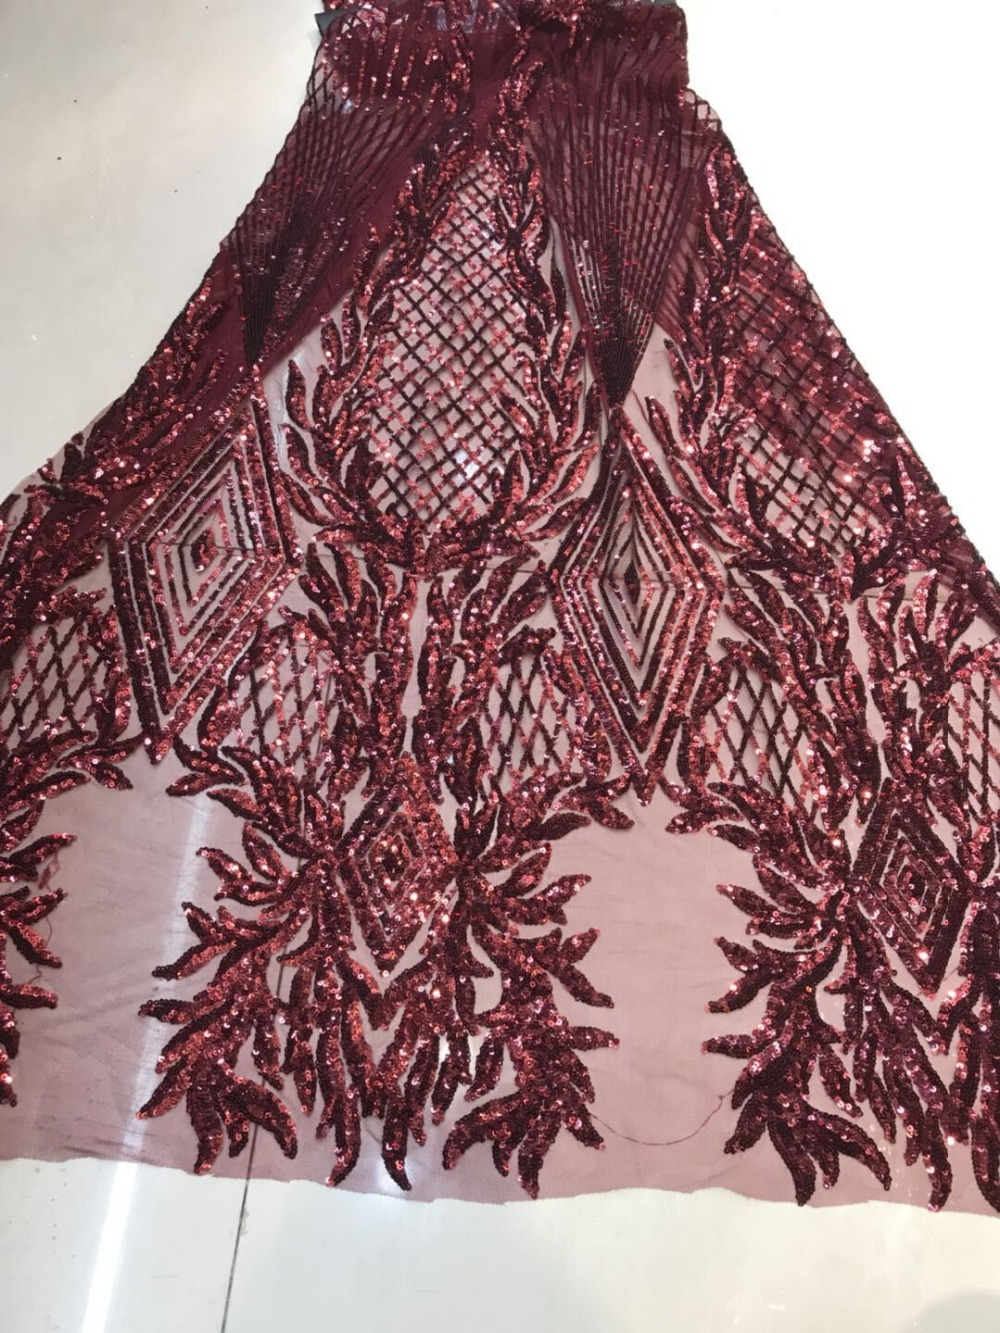 Fashion high quality sequins Embroidery african lace fabric with sequins French Net Lace Fabric party dressFashion high quality sequins Embroidery african lace fabric with sequins French Net Lace Fabric party dress